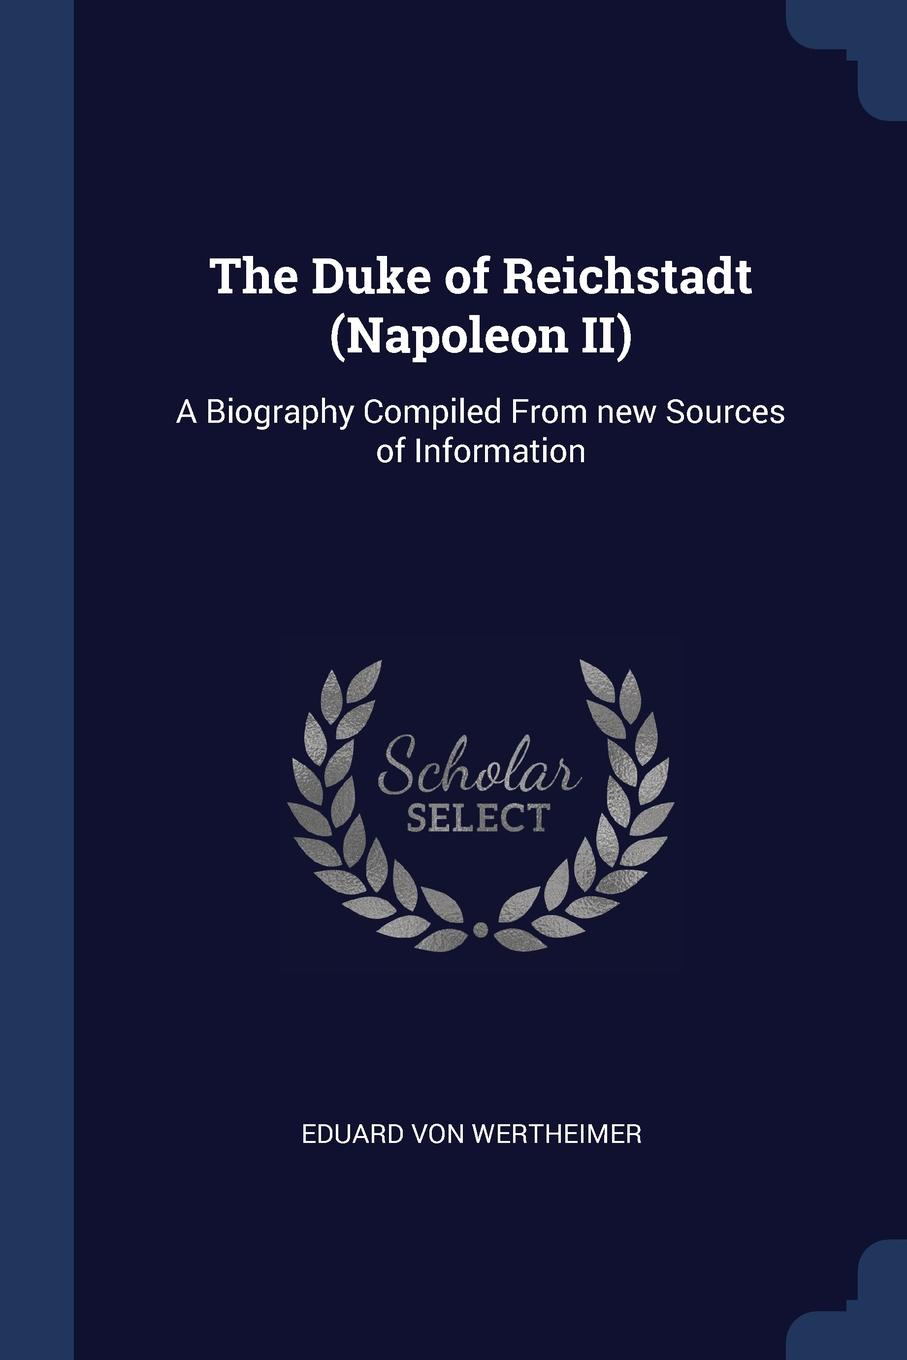 The Duke of Reichstadt (Napoleon II). A Biography Compiled From new Sources of Information. Eduard von Wertheimer